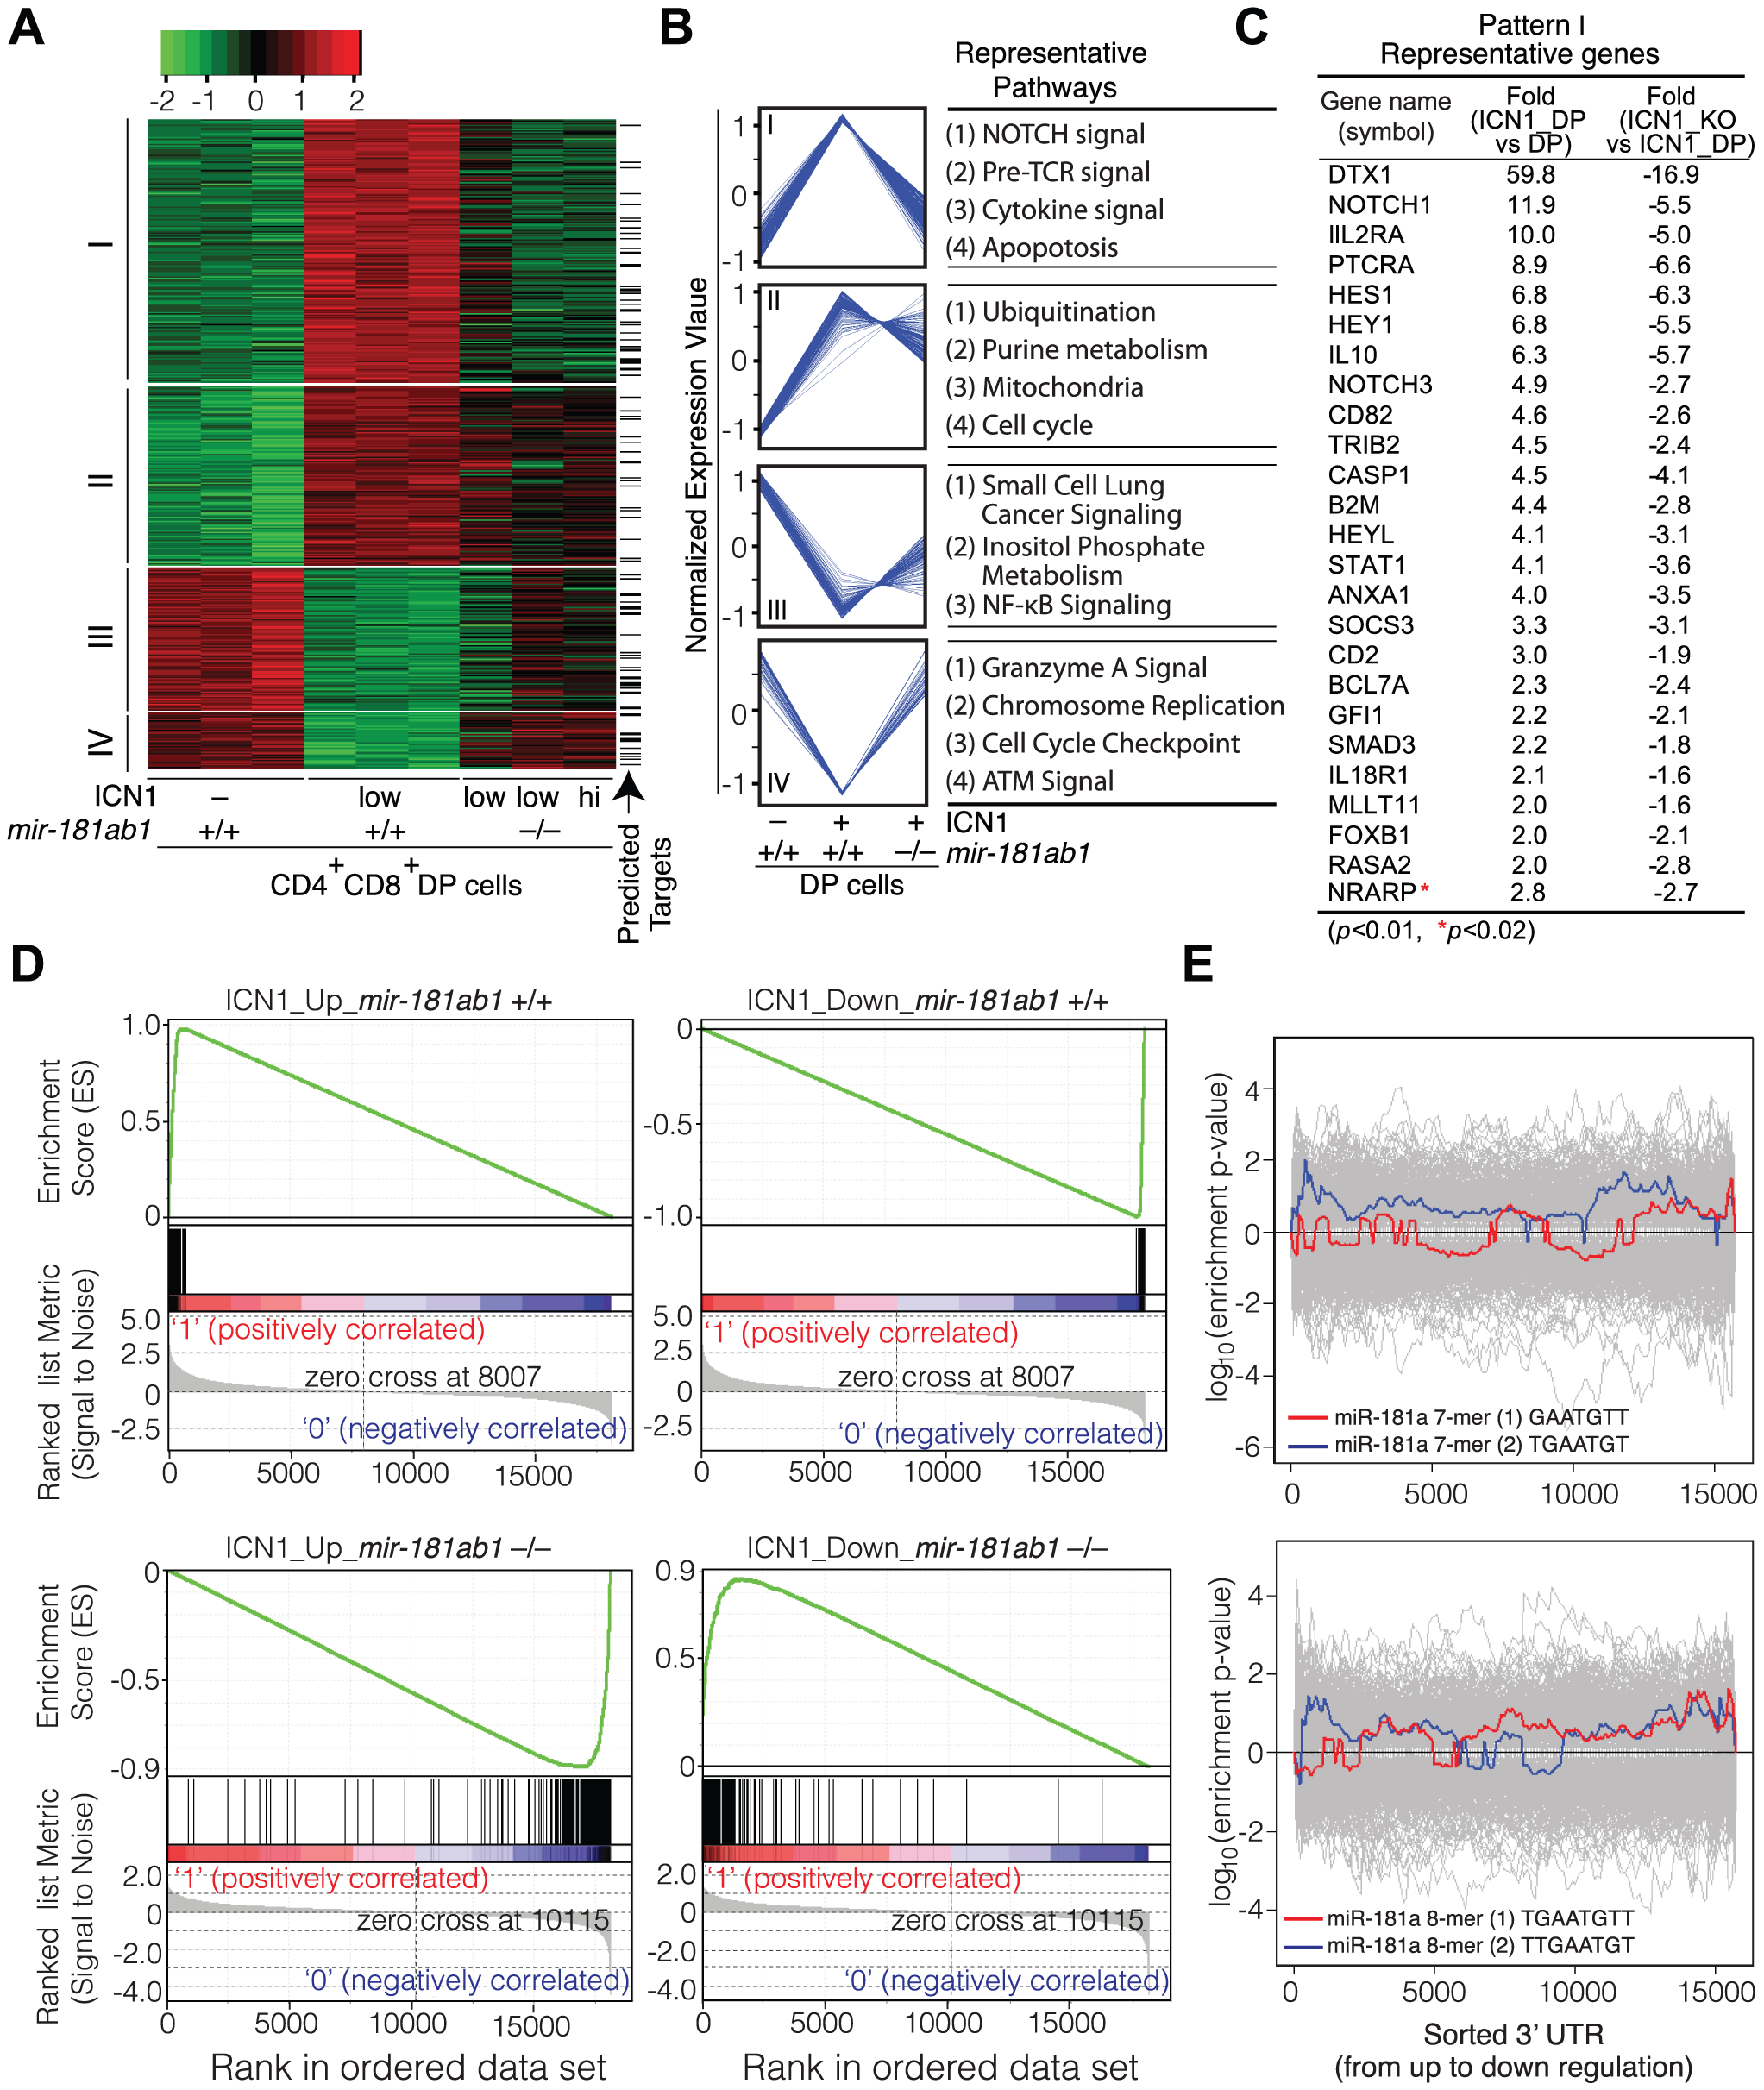 Loss of <i>mir-181ab1</i> in DP leukemia cells inhibits ICN1-controlled genetic programs.